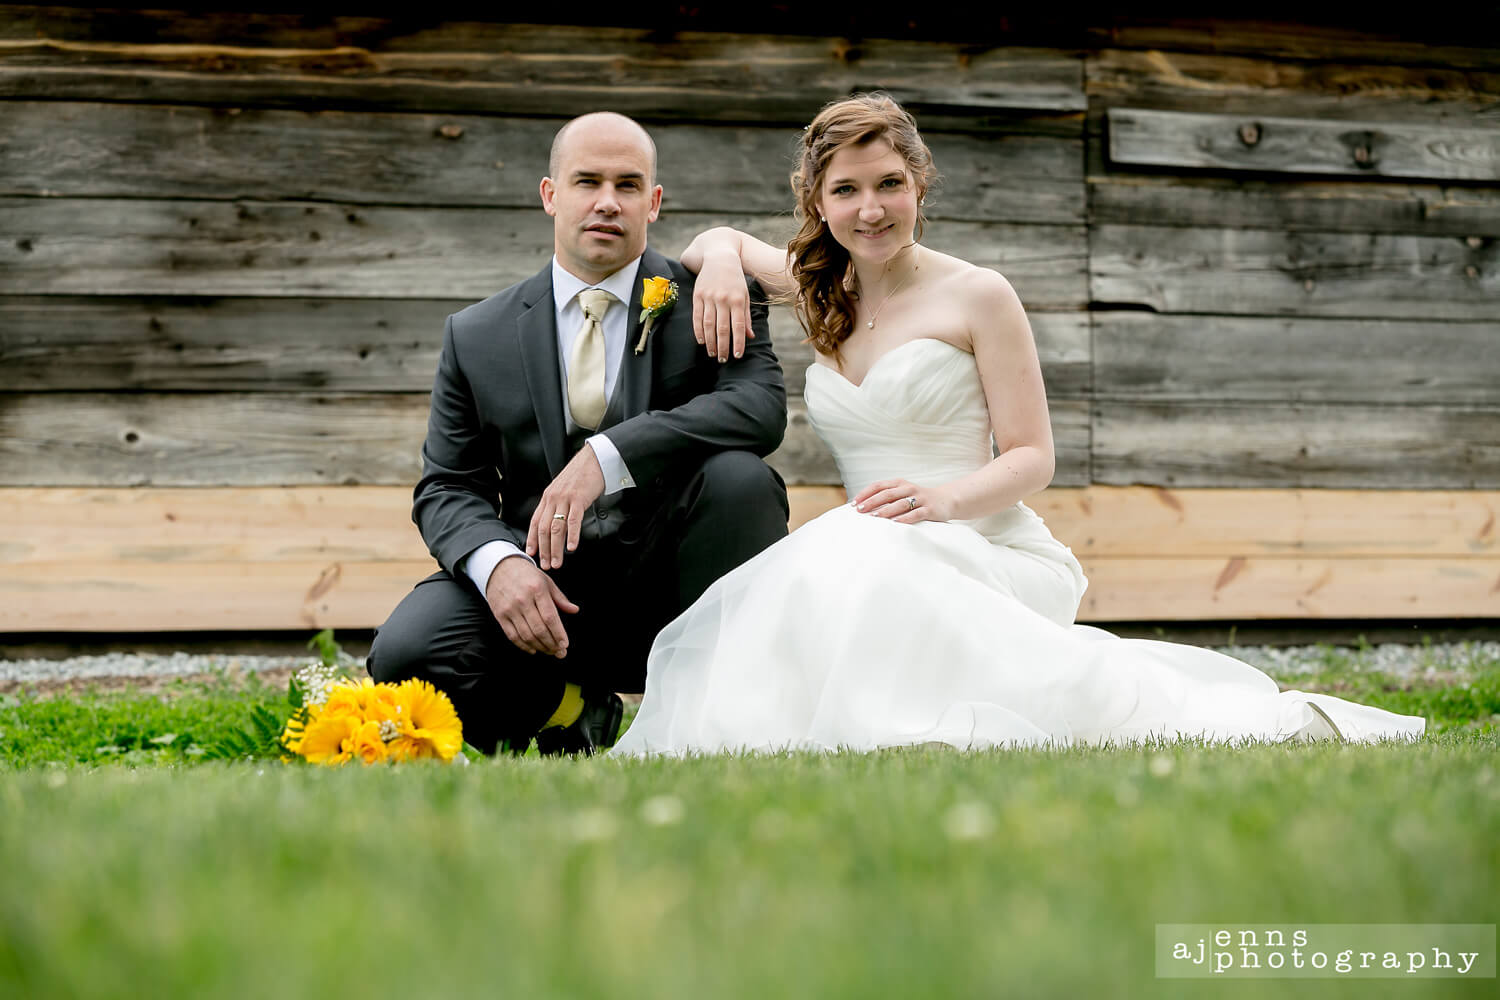 The bride and groom crouching in the short grass